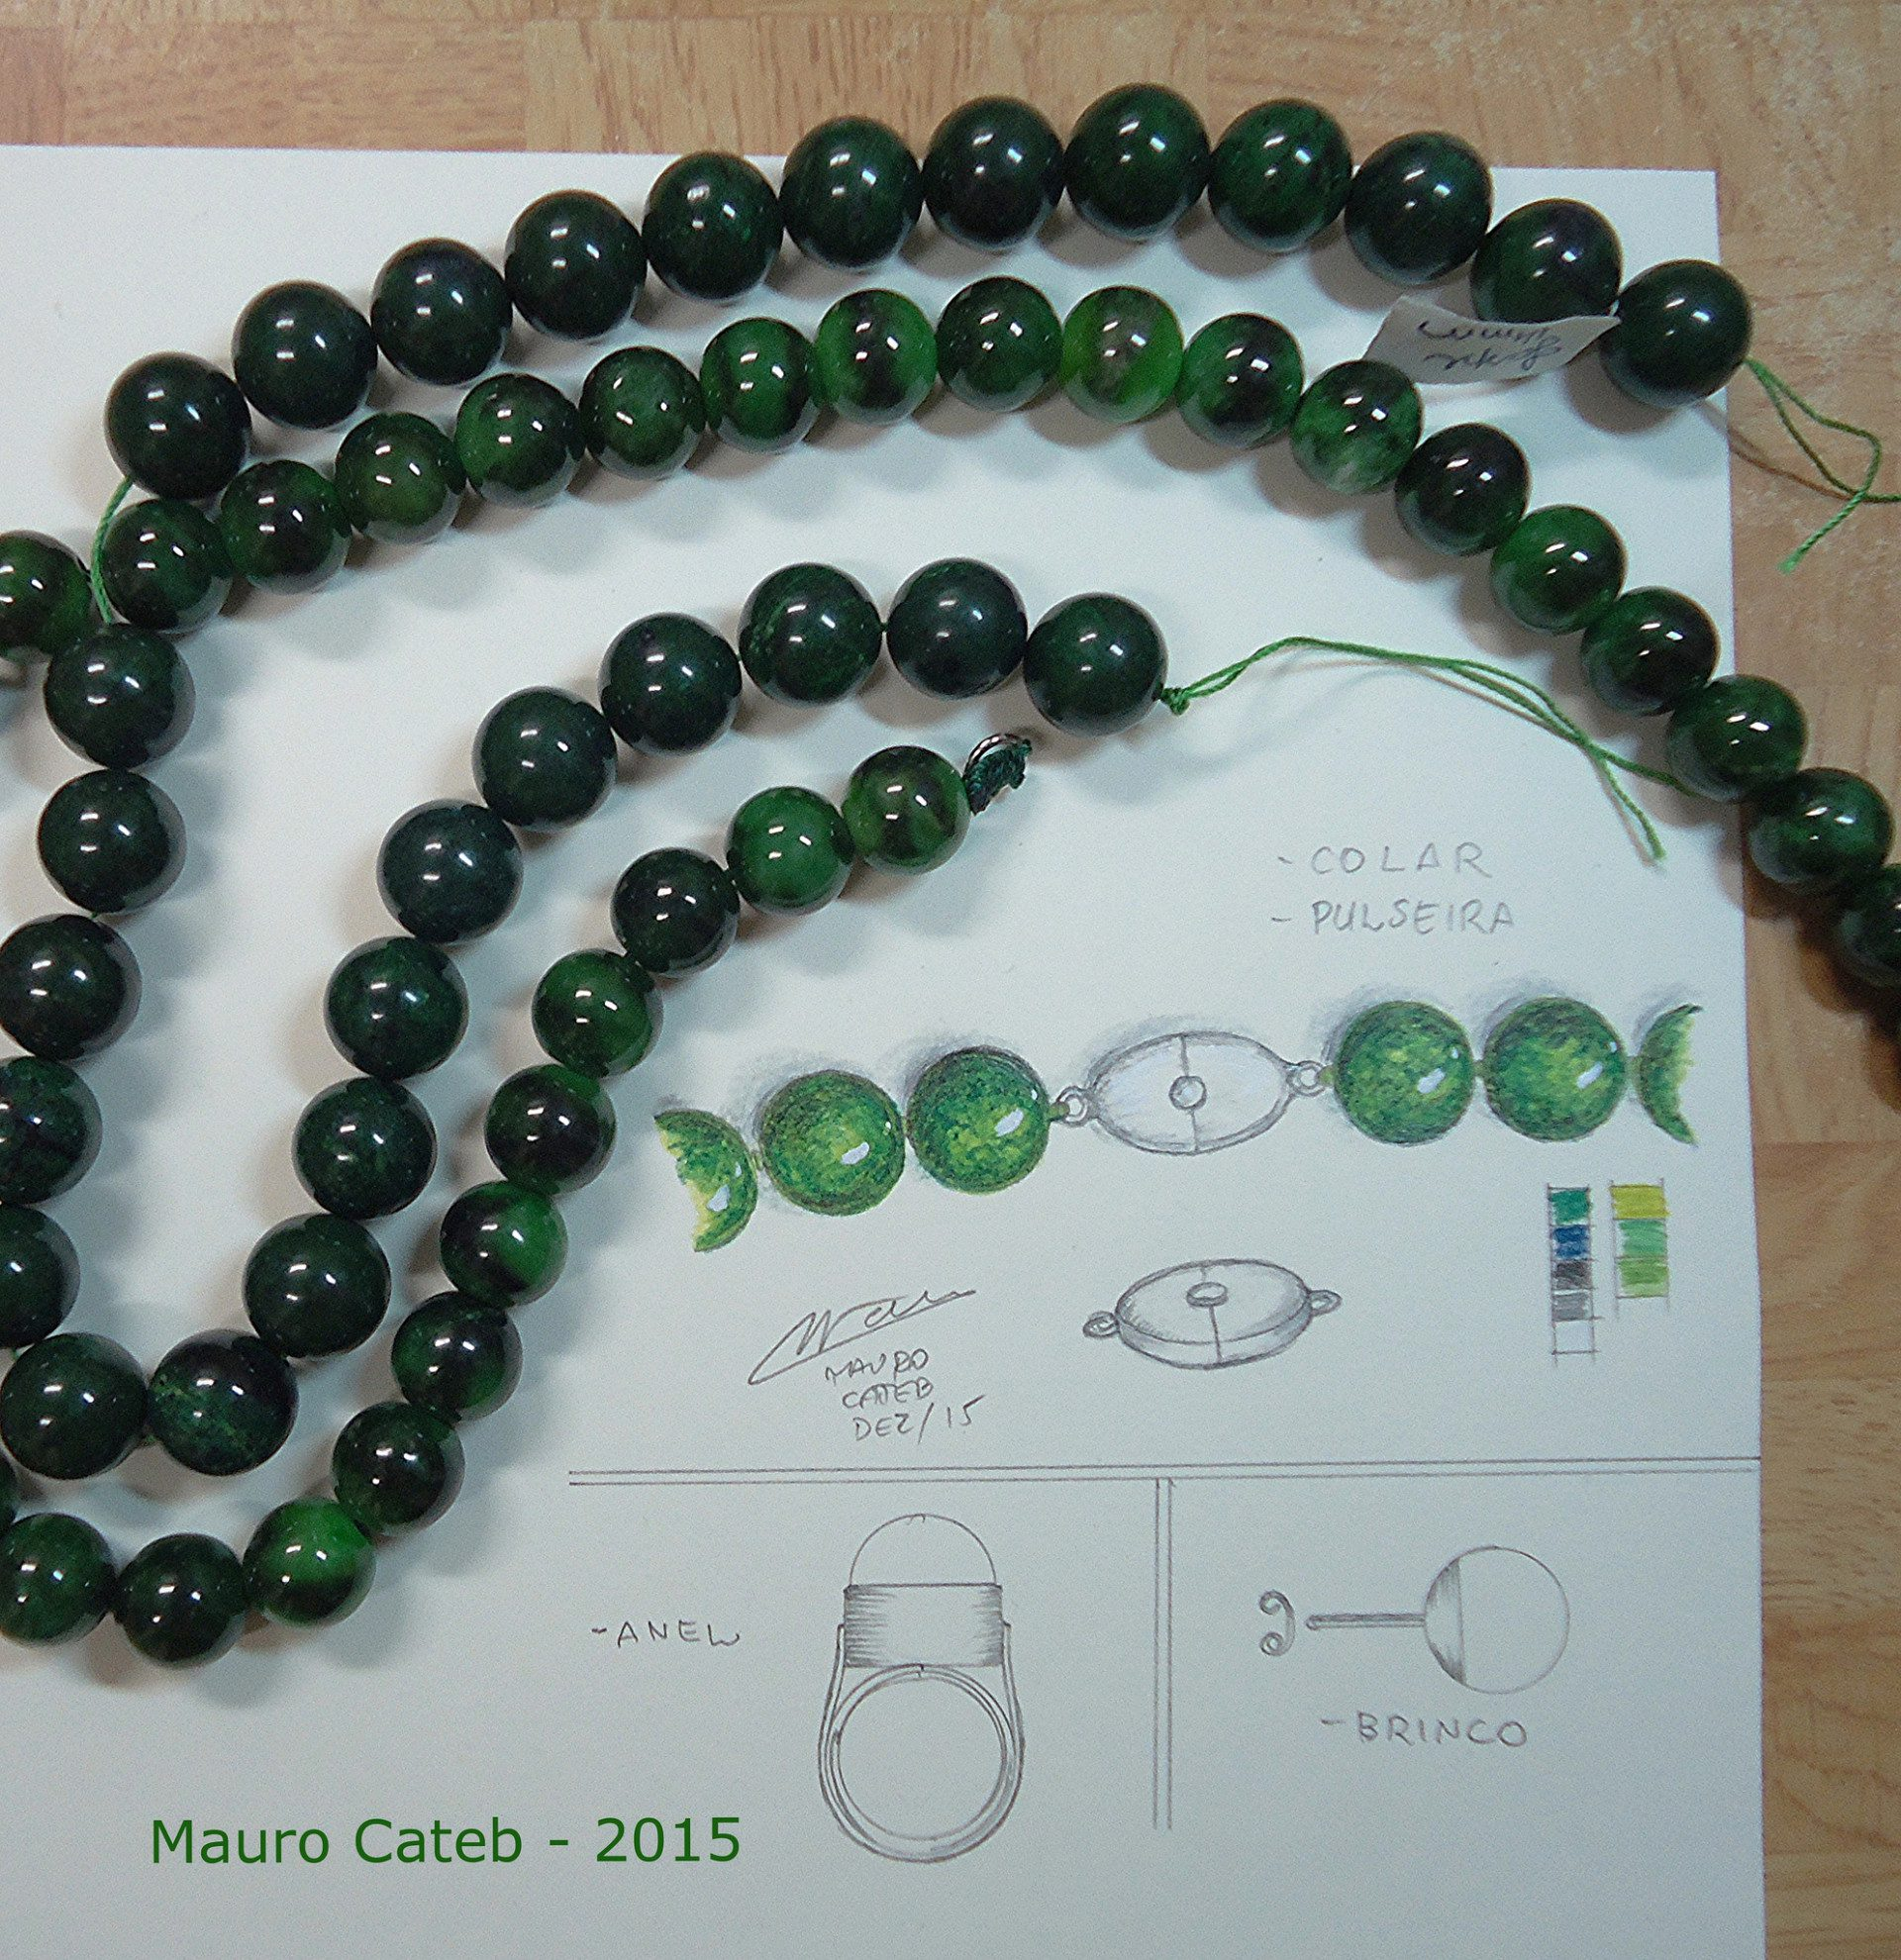 archives beads made of jade tag imperial necklaces pearls jadeite international